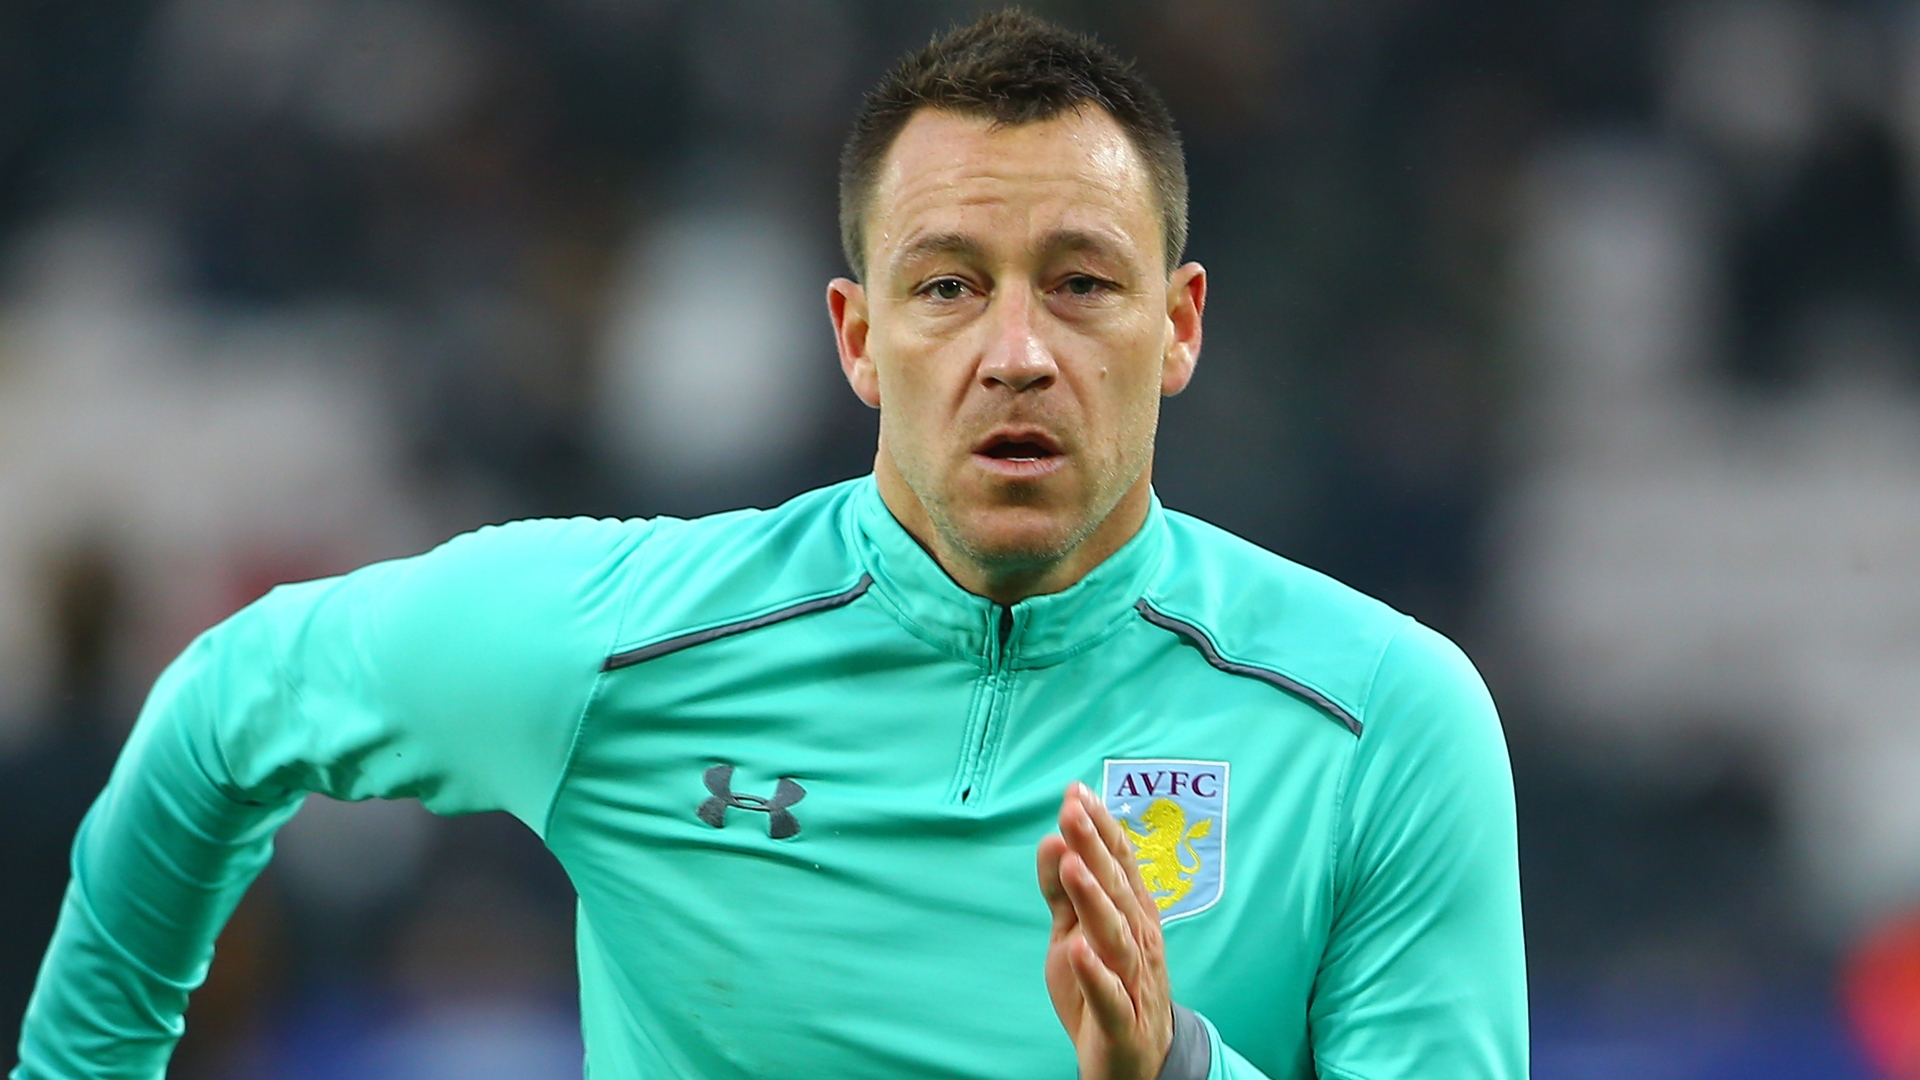 Maurizio Sarri opens the door for John Terry to return to Chelsea